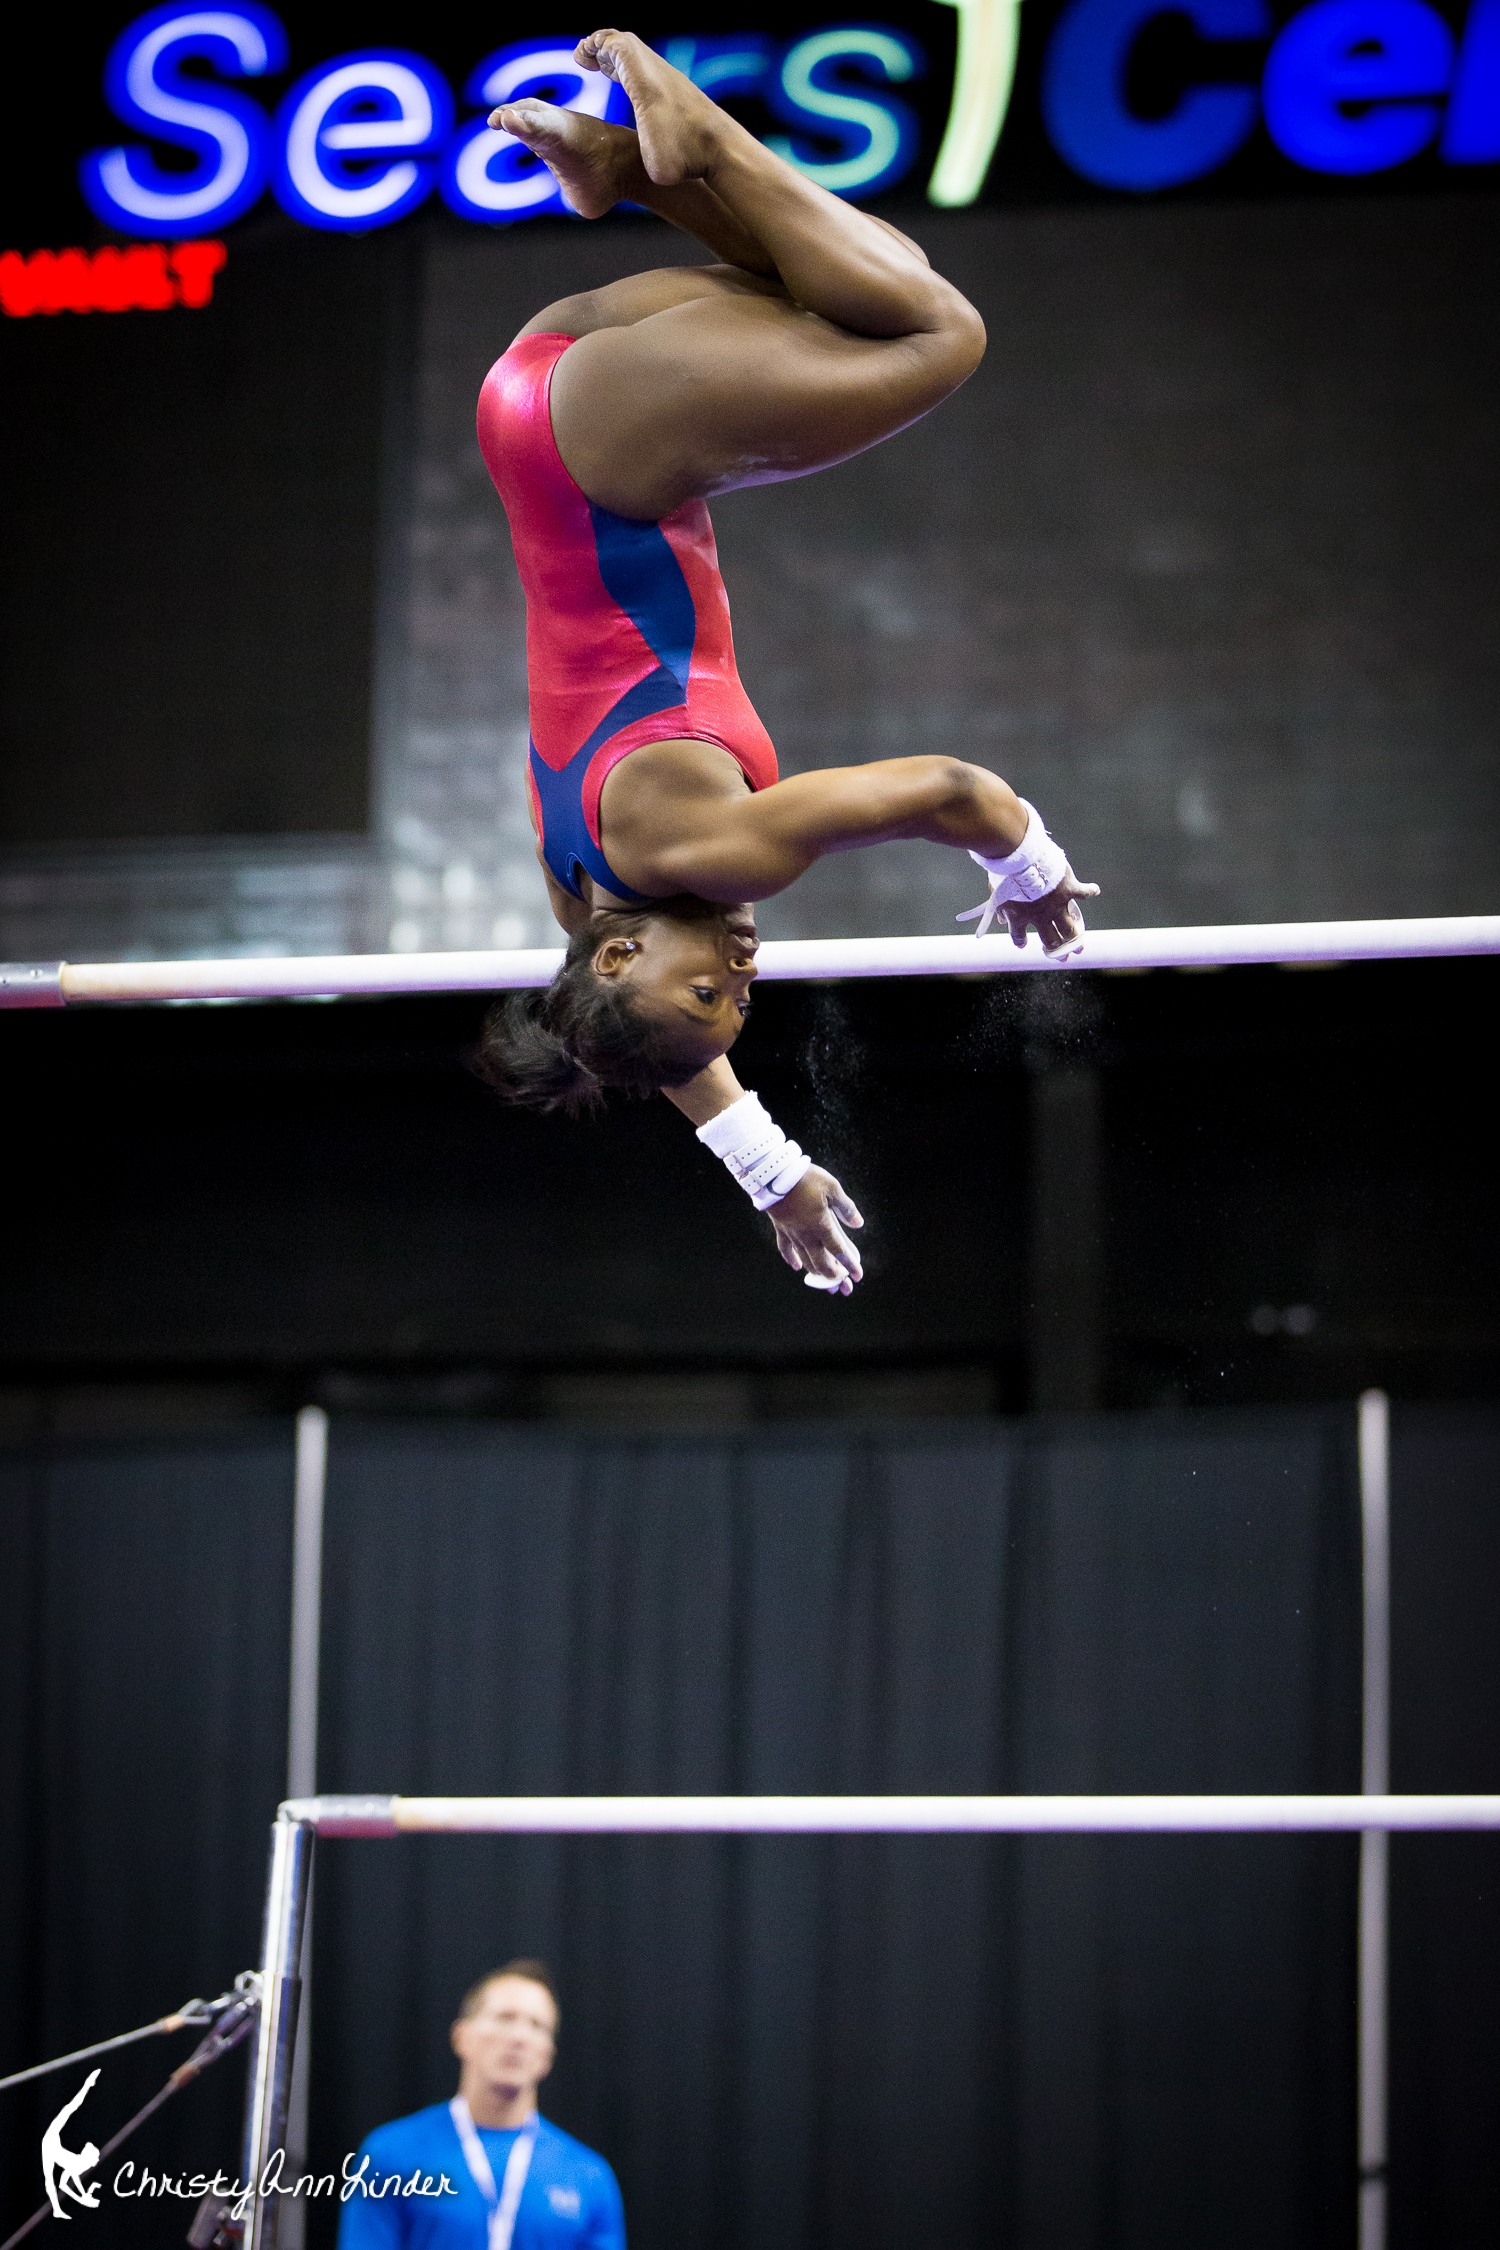 podium-training-secret-classic-54jpg